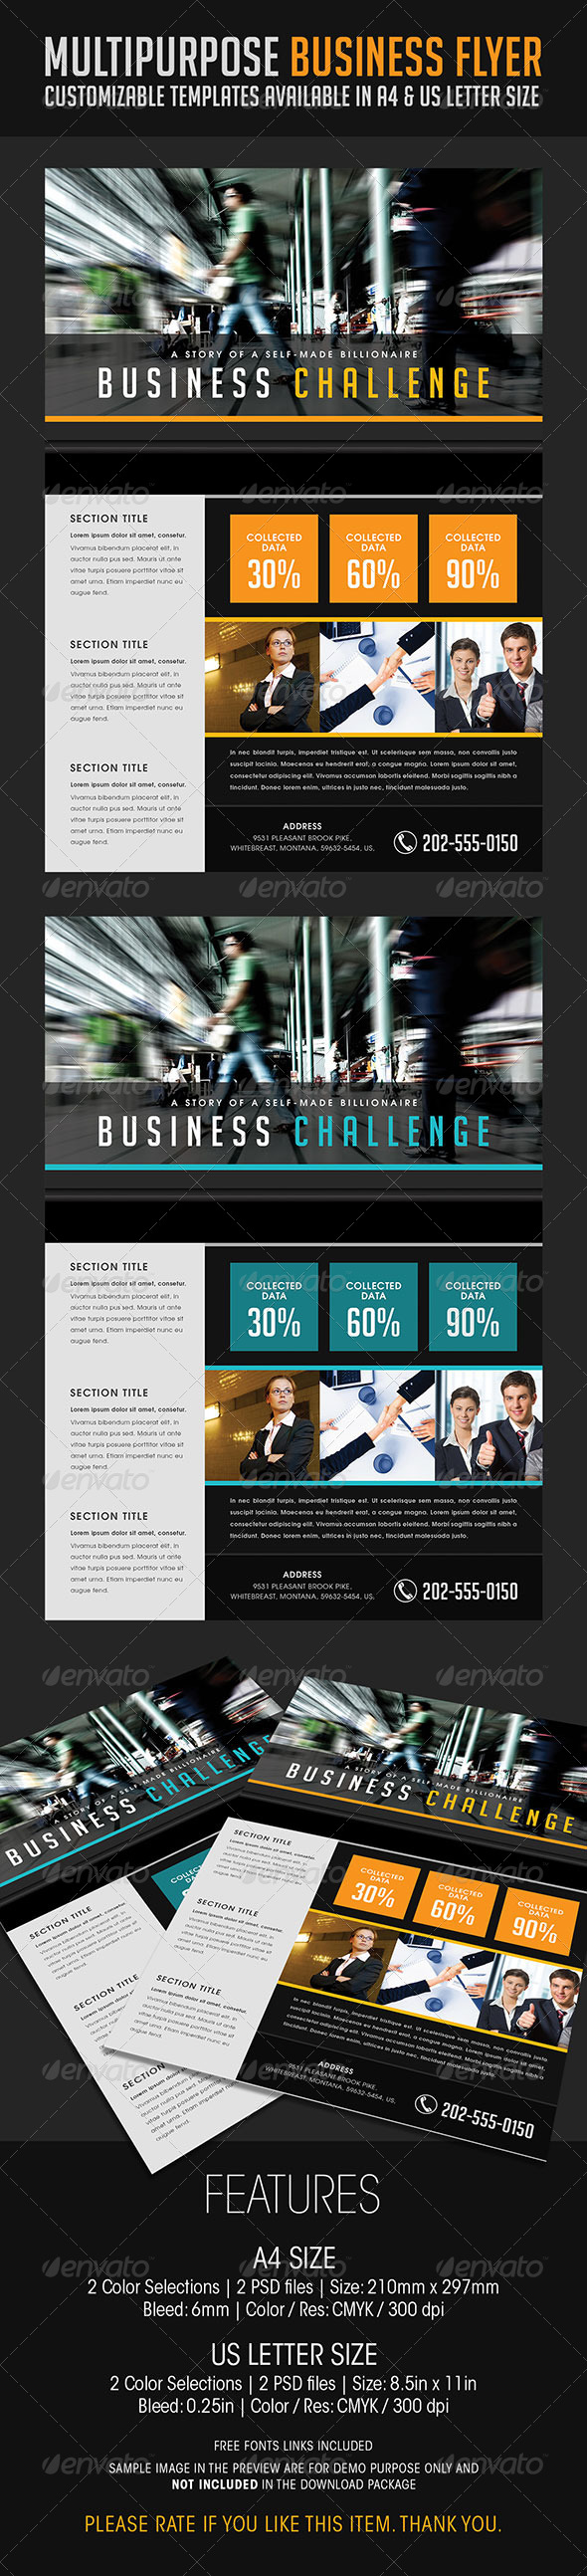 GraphicRiver Multipurpose Business Flyer 07 6813958